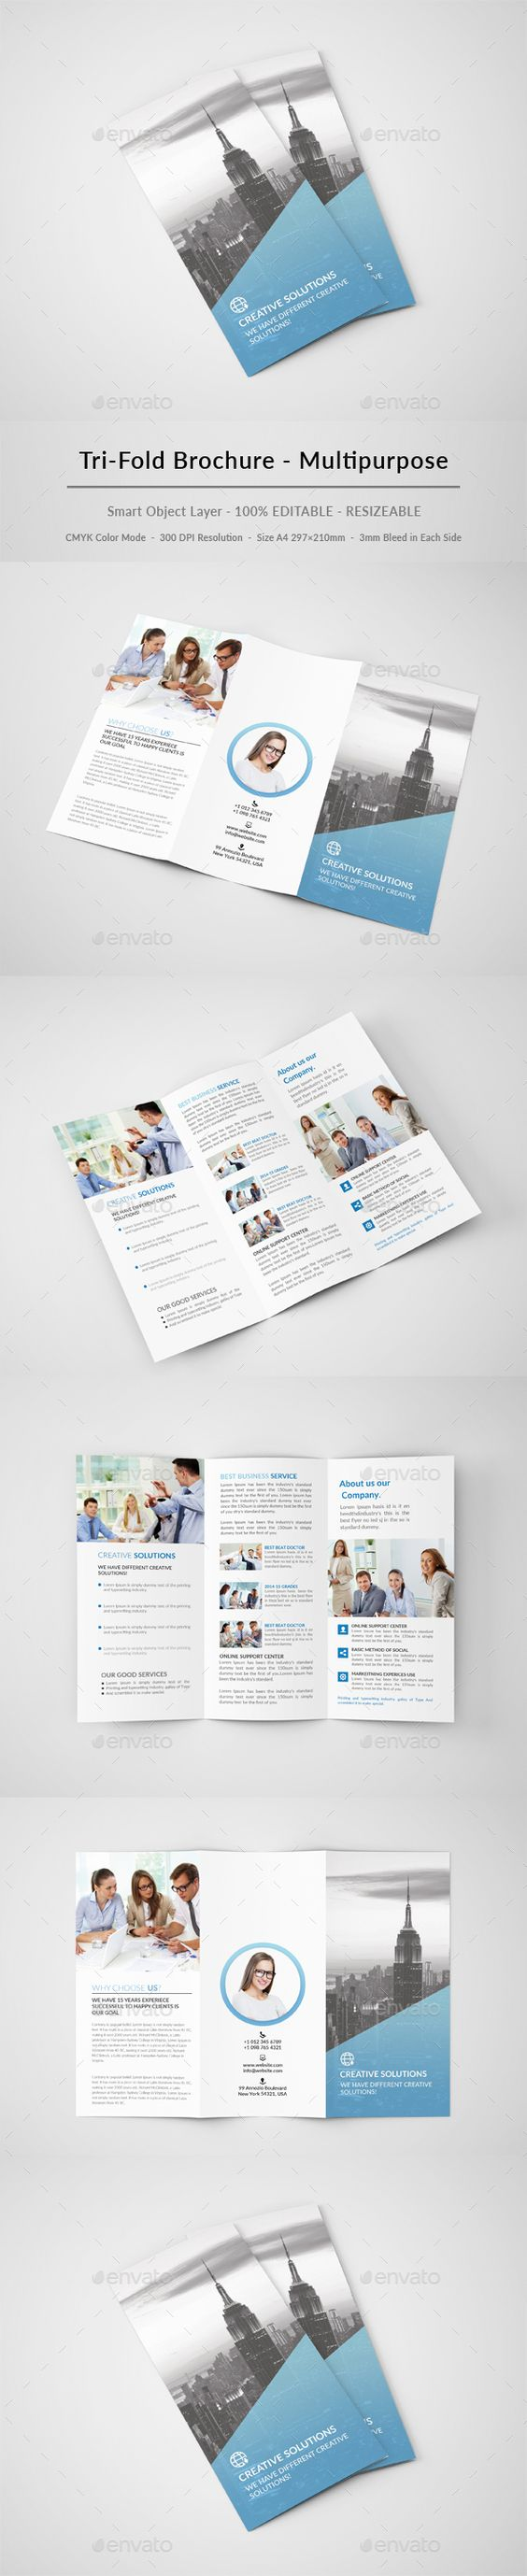 Creative Trifold Brochure Template PSD #design Download: http://graphicriver.net/item/creative-trifold-brochure/13289261?ref=ksioks